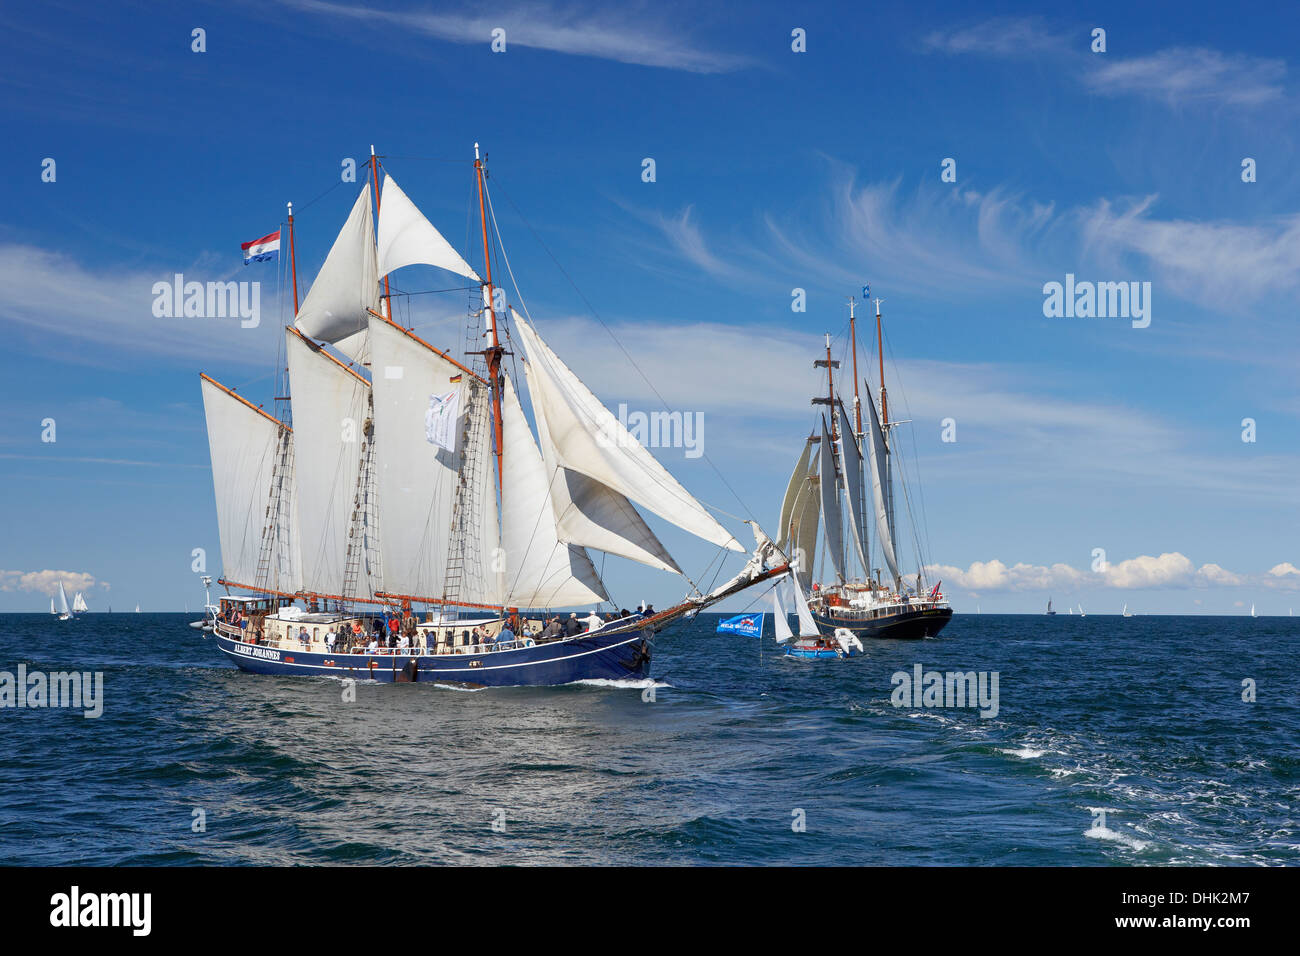 Sailing ships on Baltic Sea on their way to Hanse Sail, Rostock Warnemuende, Mecklenburg Western Pomerania, Germany, Europe - Stock Image